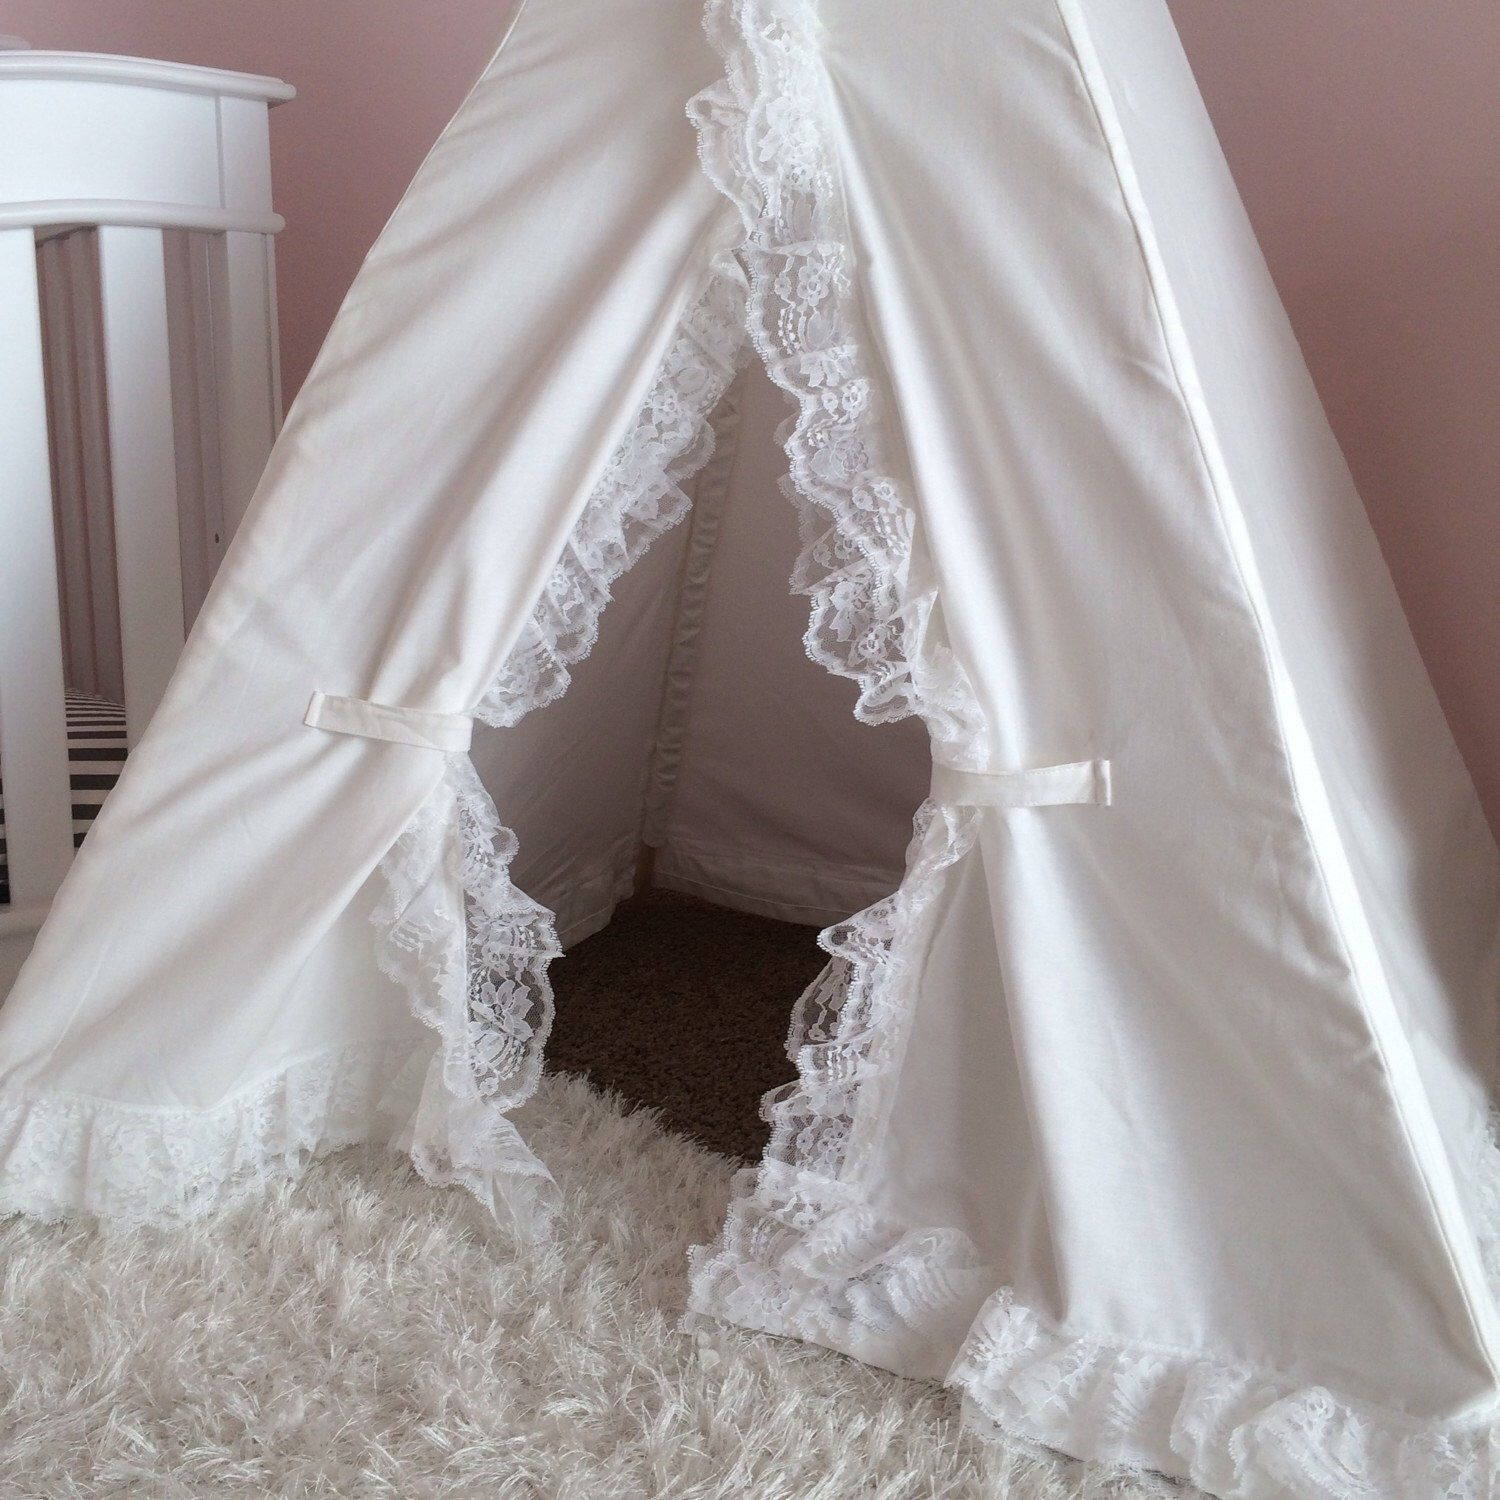 Lace Teepee White Canvas with White Lace -- kids teepee tent for nursery playroom & Lace Teepee White Canvas with White Lace -- kids teepee tent for ...